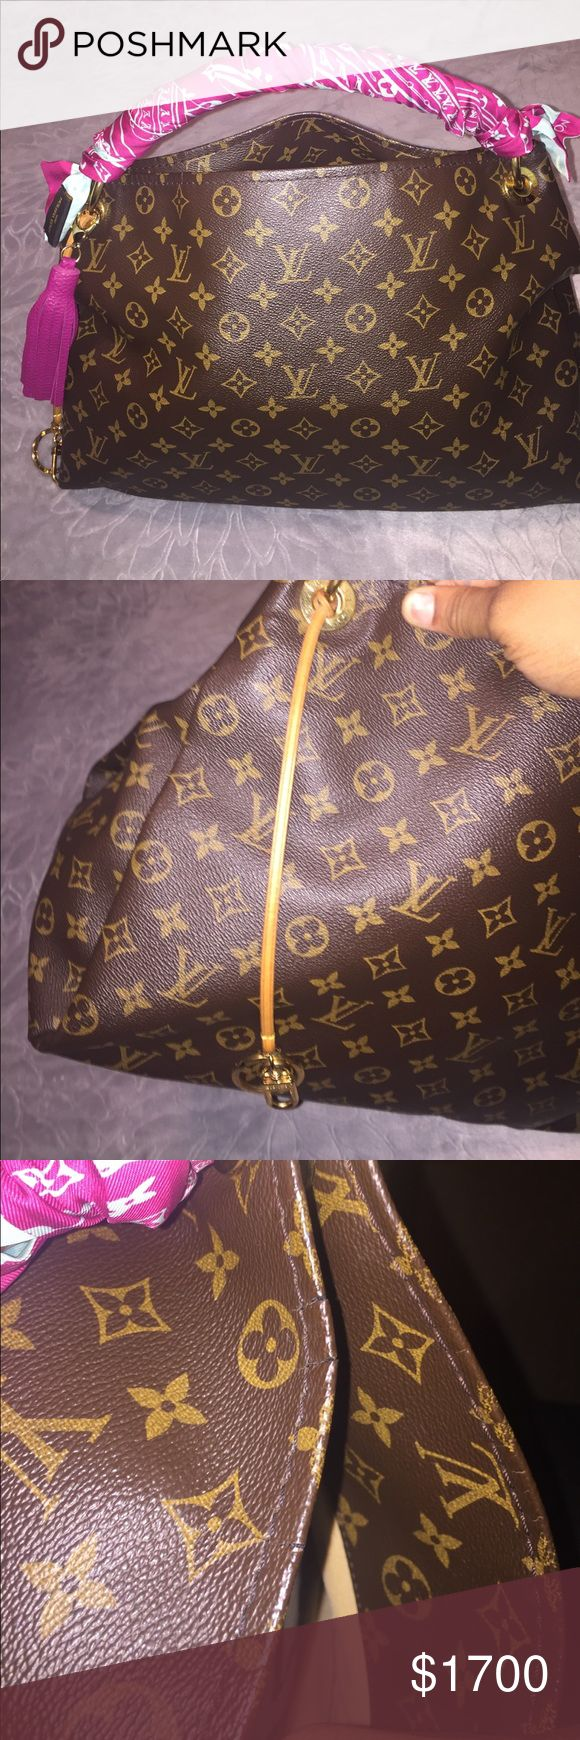 Authentic Louis Vuitton Artsy Handbag Monogram print hobo style, with vachetta handle and accent with gold hardware. Great condition, see pictures for flaws. Will ship with the authentic Louis Vuitton Bandeau shown in pictures and fuchsia leather tassel charm  ($220 value). Ask questions! Louis Vuitton Bags